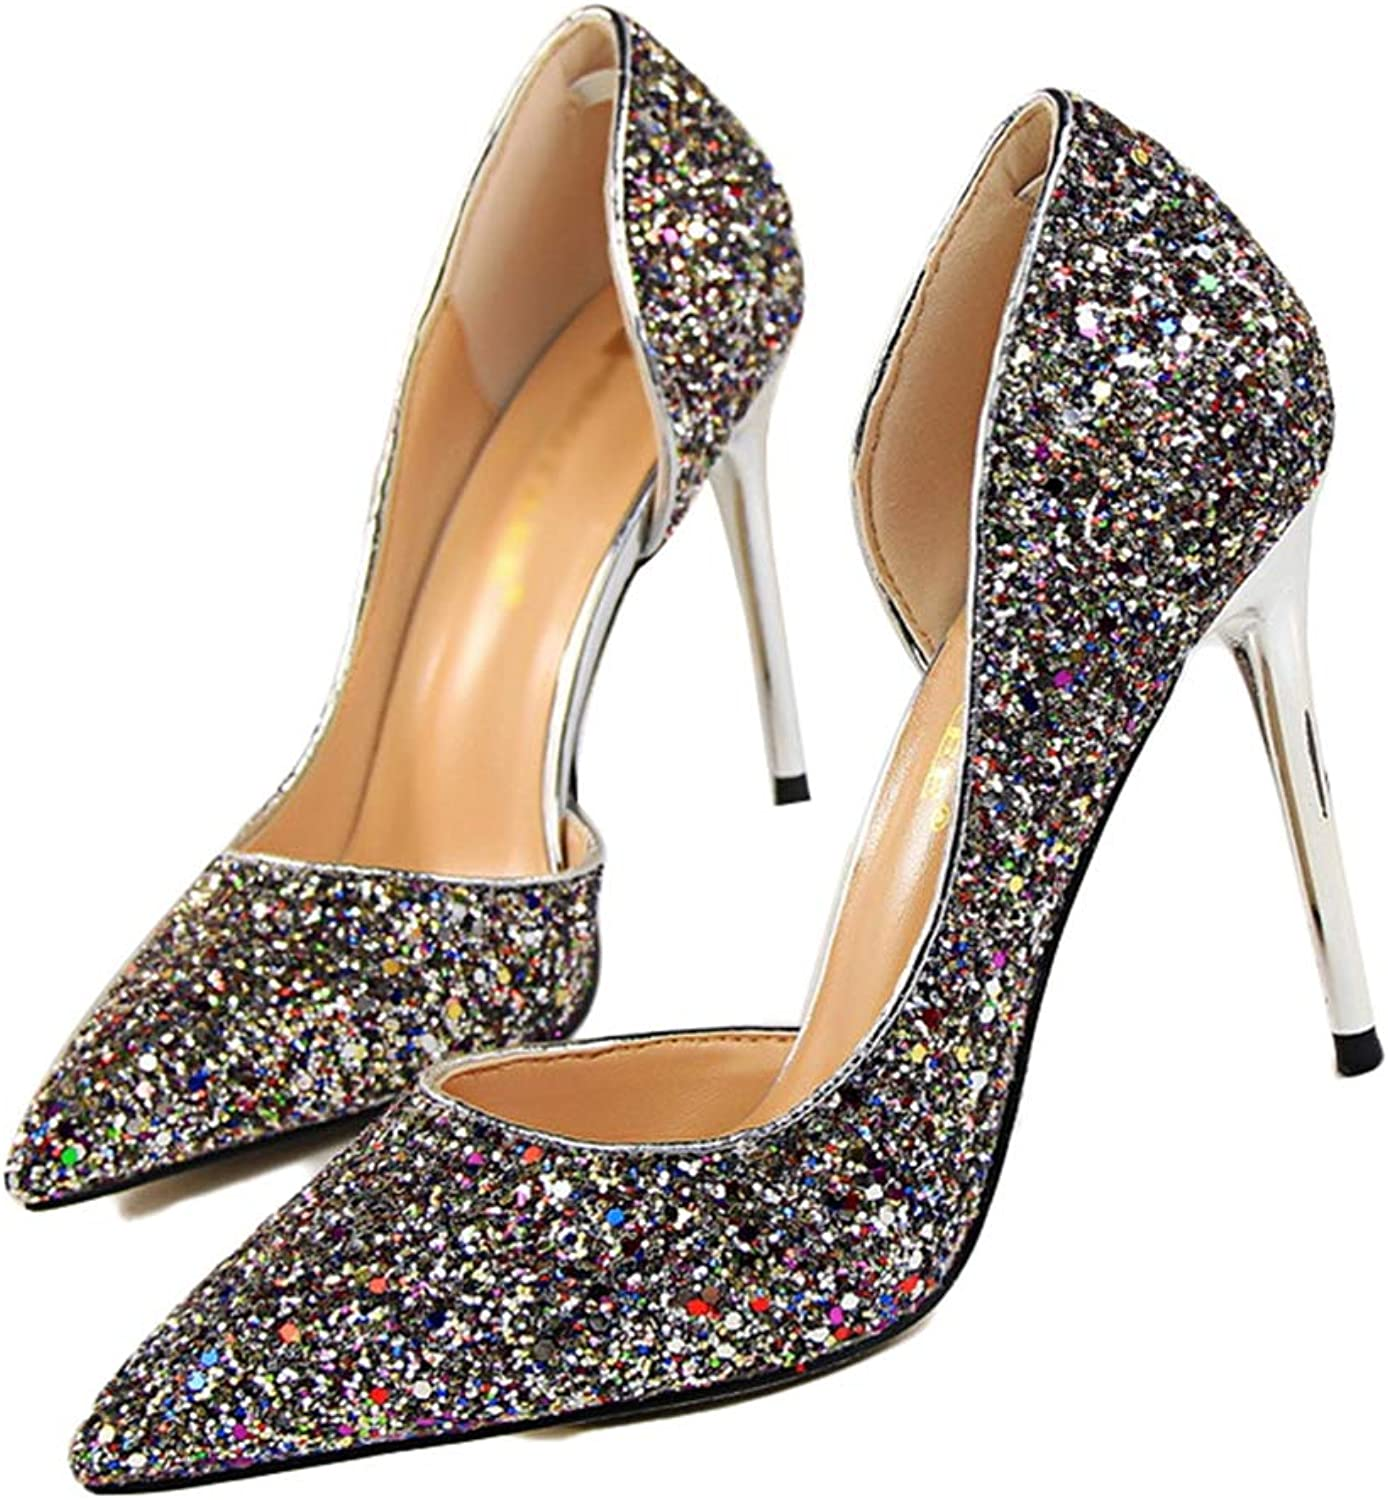 Drew Toby Women Pumps Sequin Shallow Side Cut-Outs Party Pointed Toe OL Office High Heels